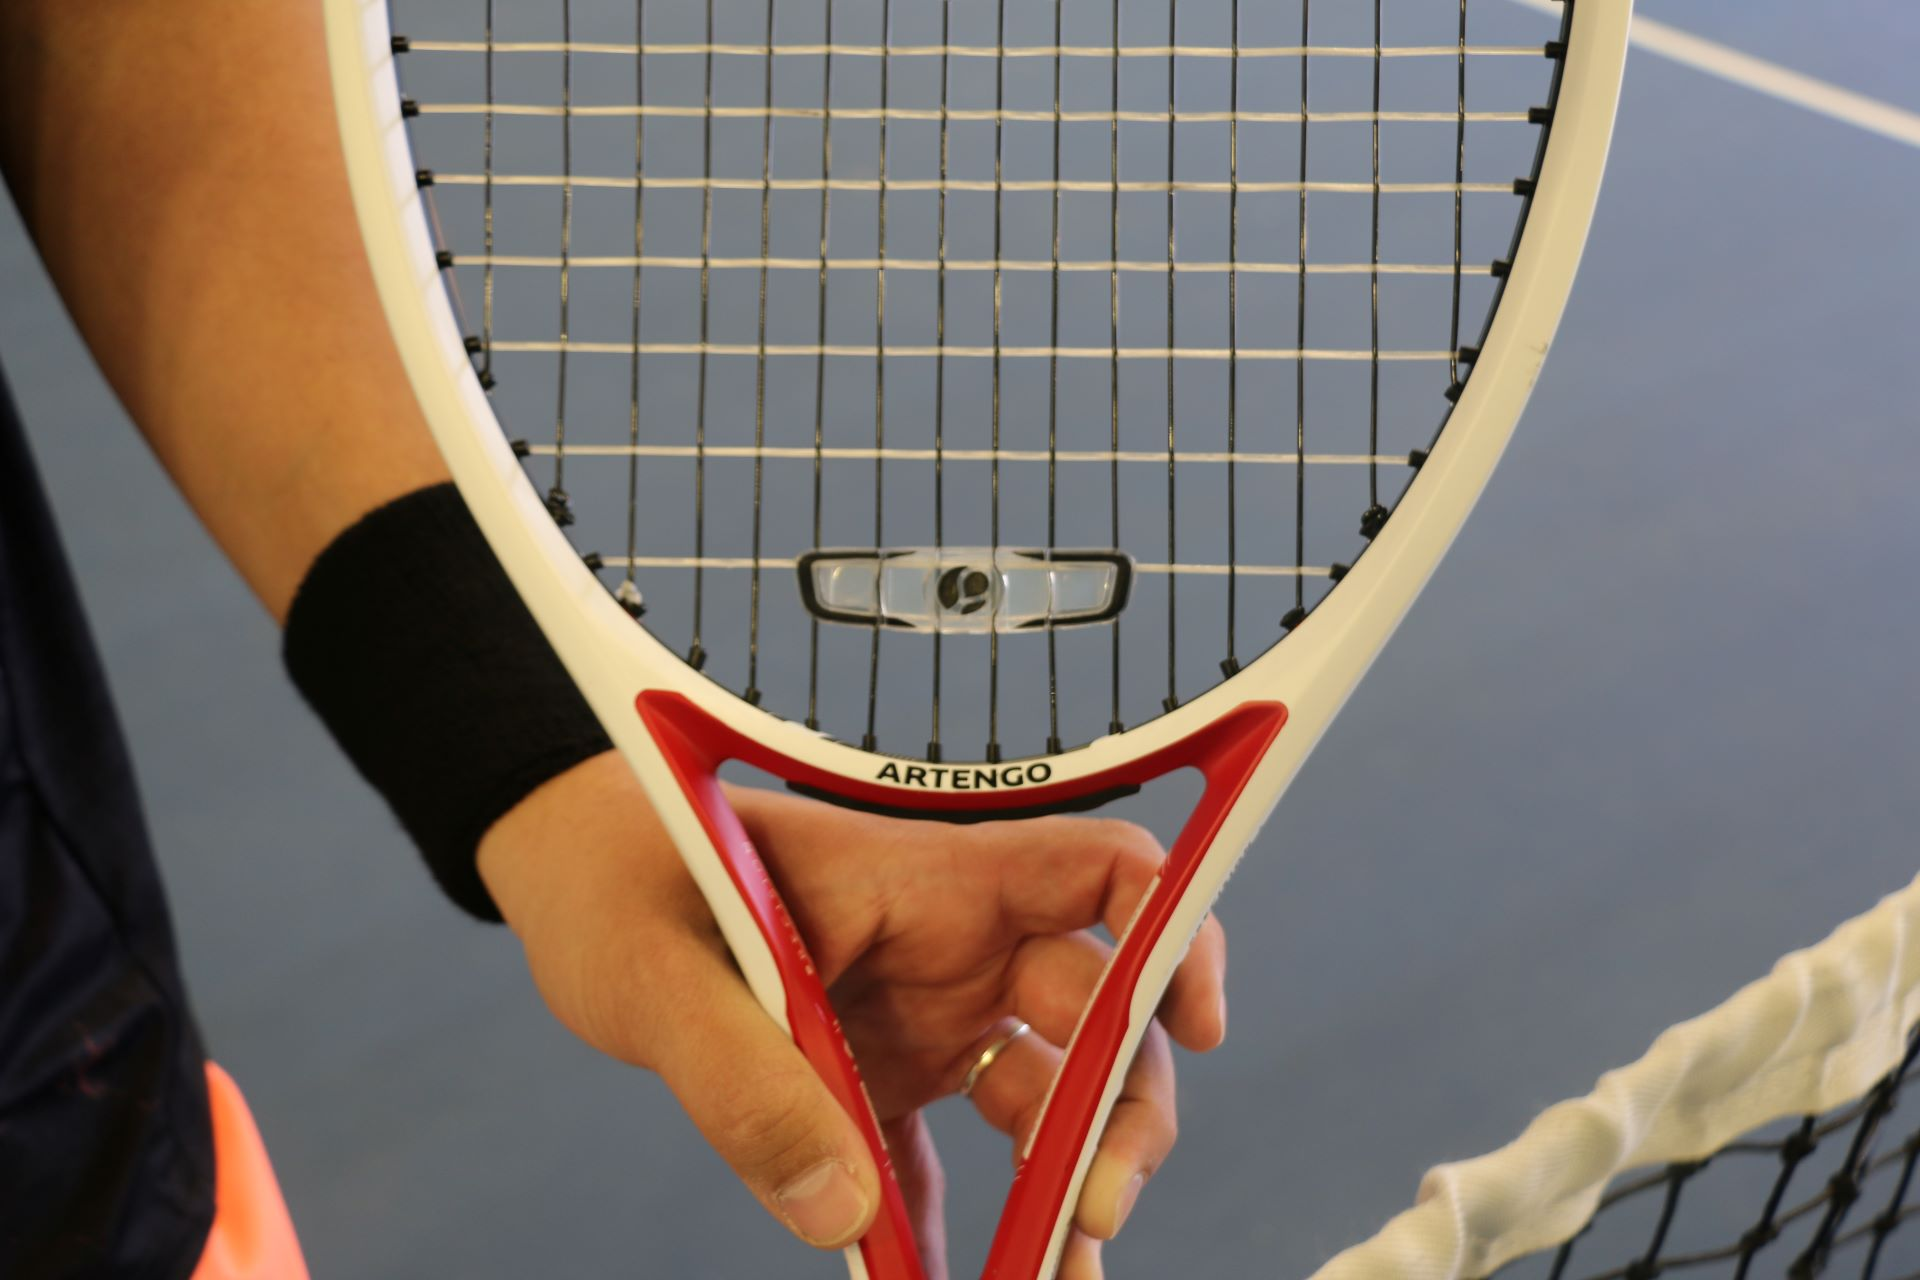 Are Vibration Dampers Right For Your Tennis Game Decathlon